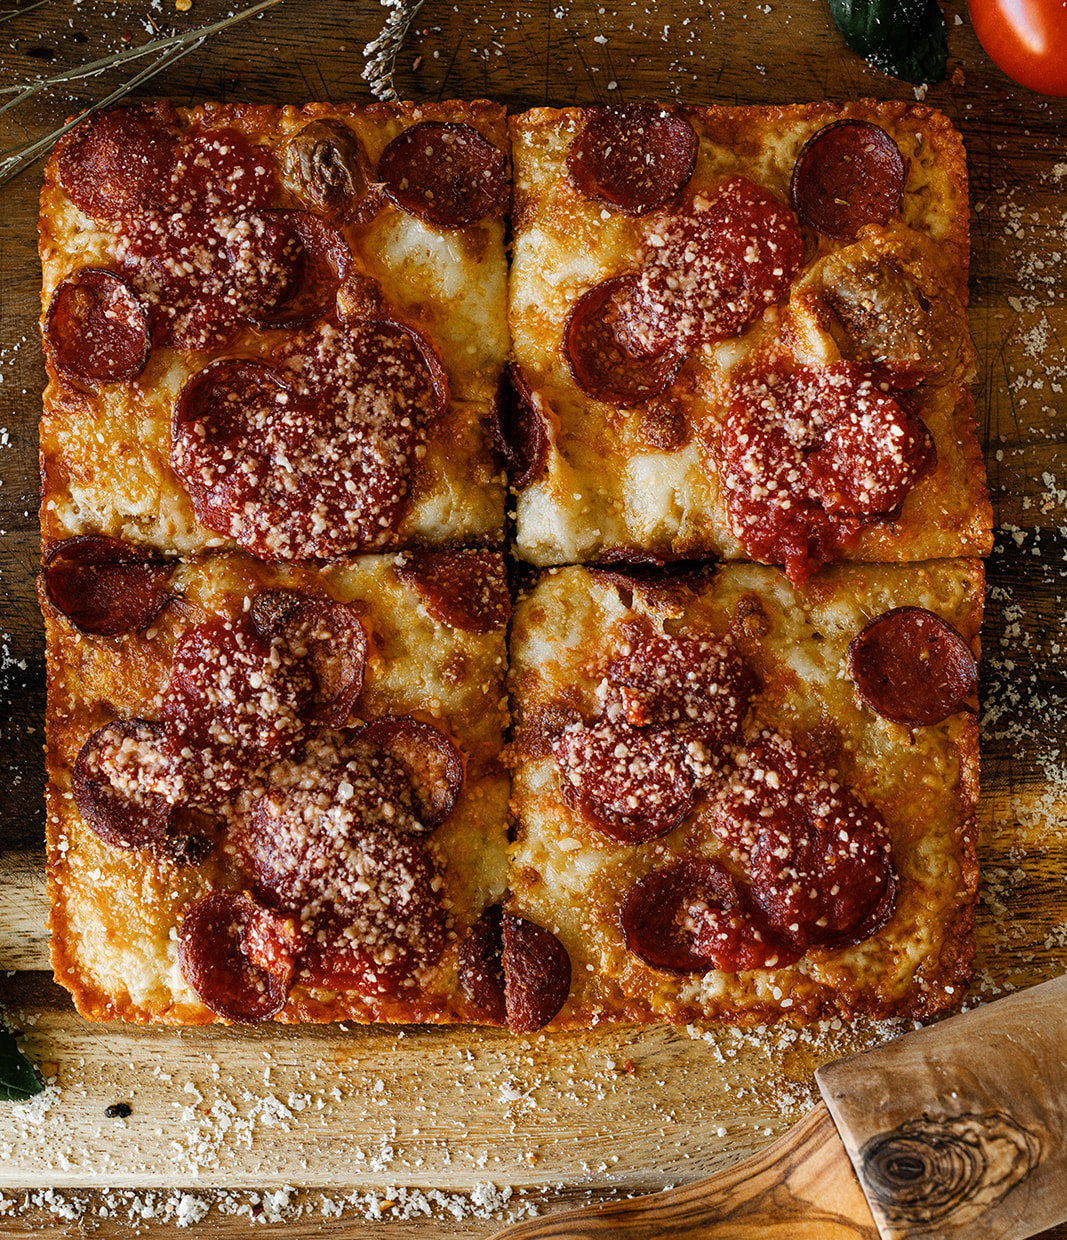 4 slices of square pepperoni pizza on a wood background sprinkled cheese.